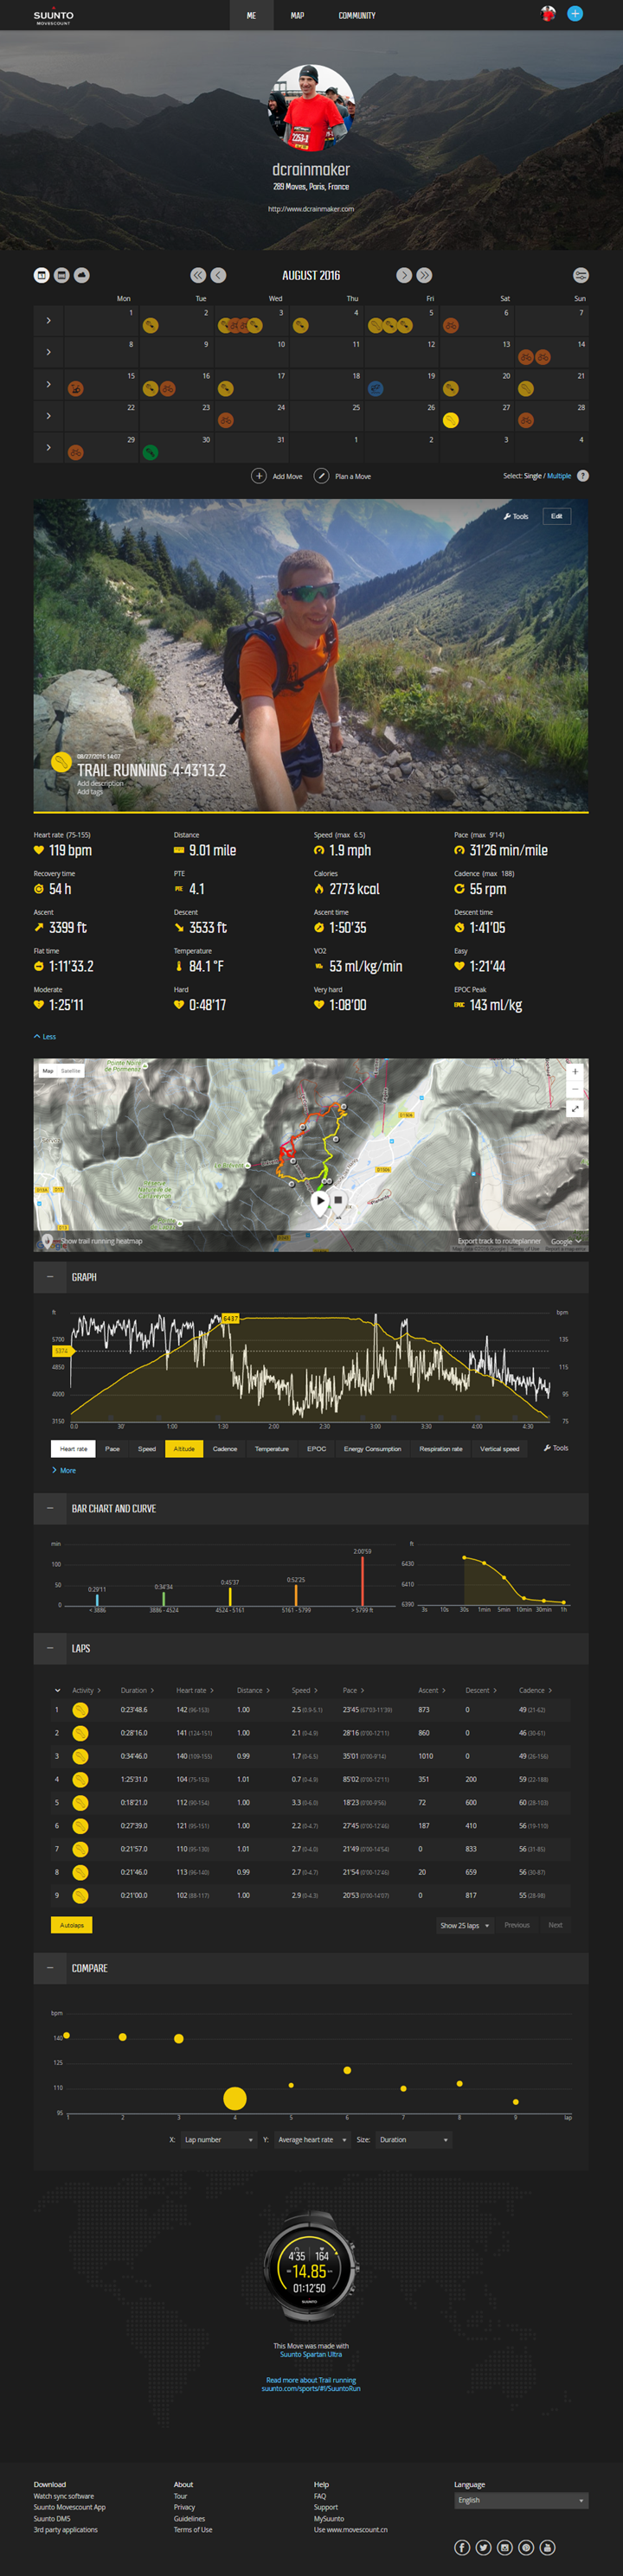 screencapture-movescount-gear-gear1613512-Suunto_Spartan_Ultra-1477315482513-Hike